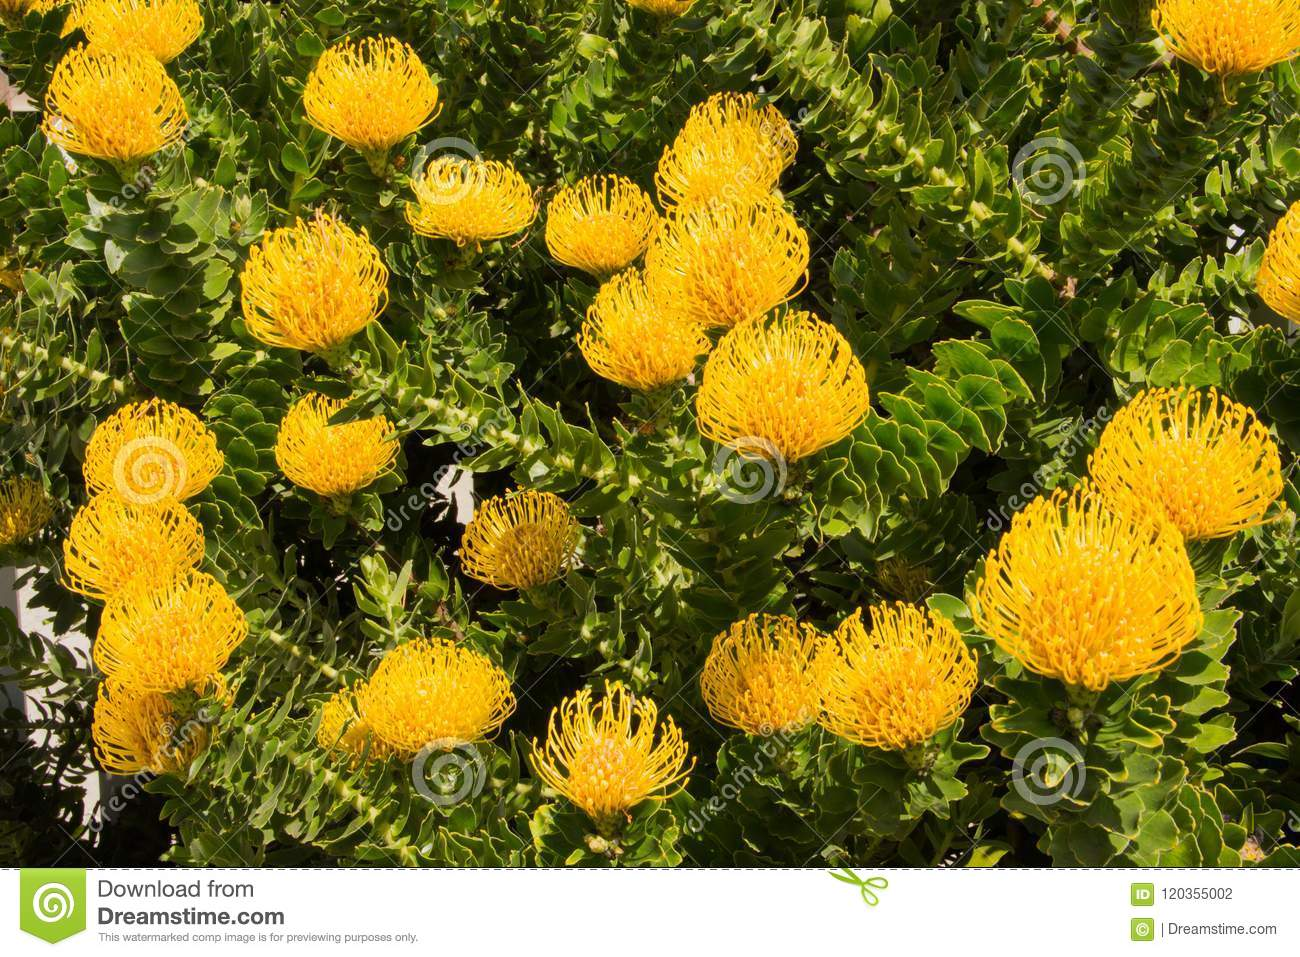 Shrub Of Bright Yellow Protea Pincushion Flowers And Leaves Stock